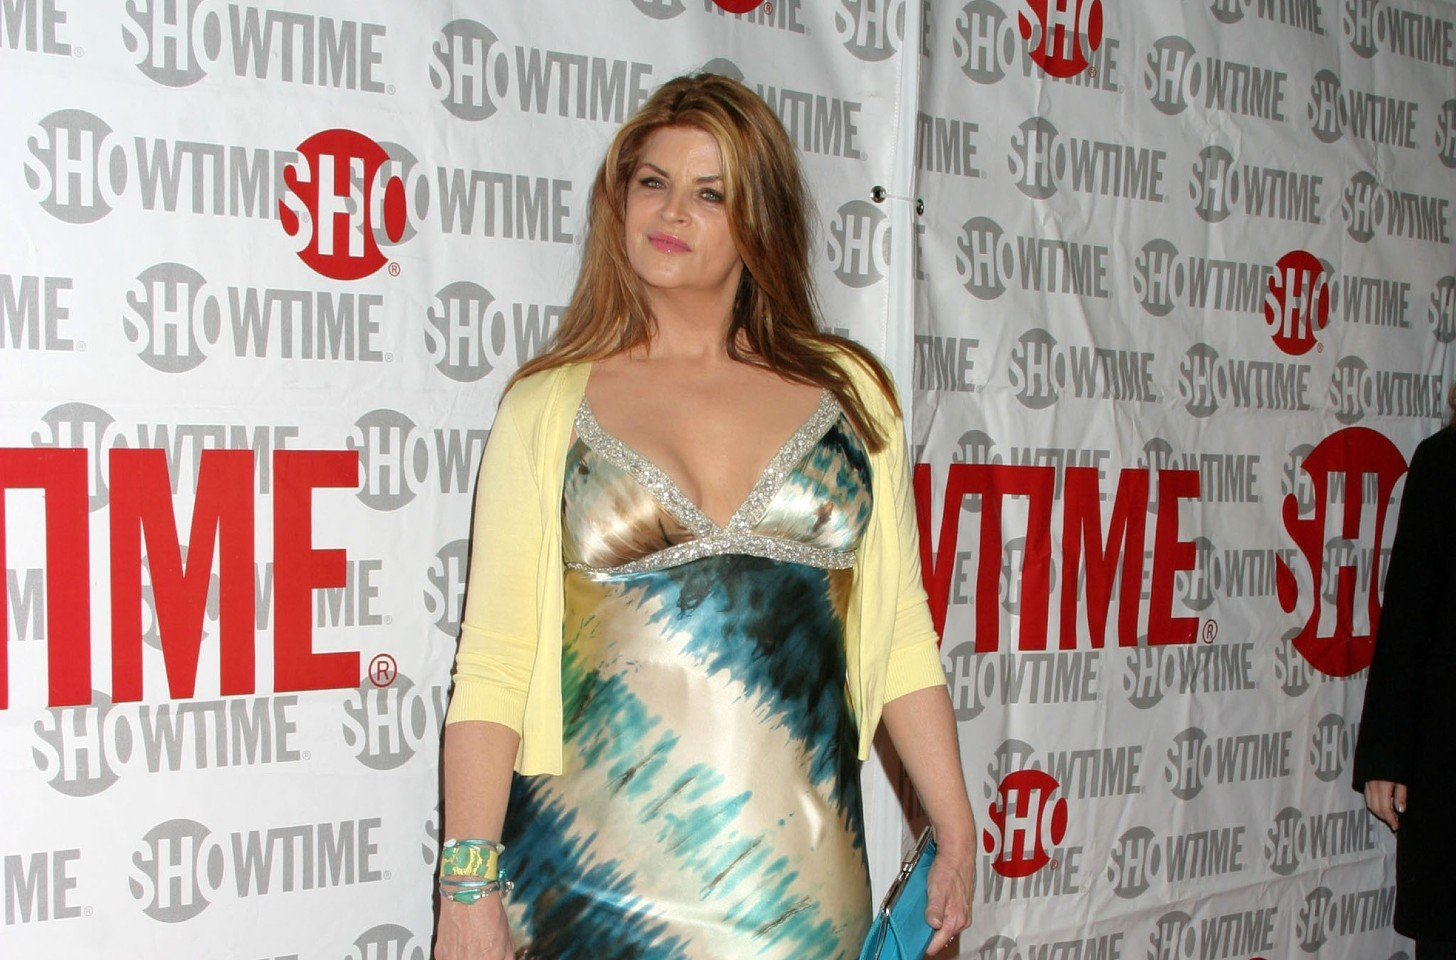 What Happened To Kirstie Alley? Here's What She's Doing Now in 2021